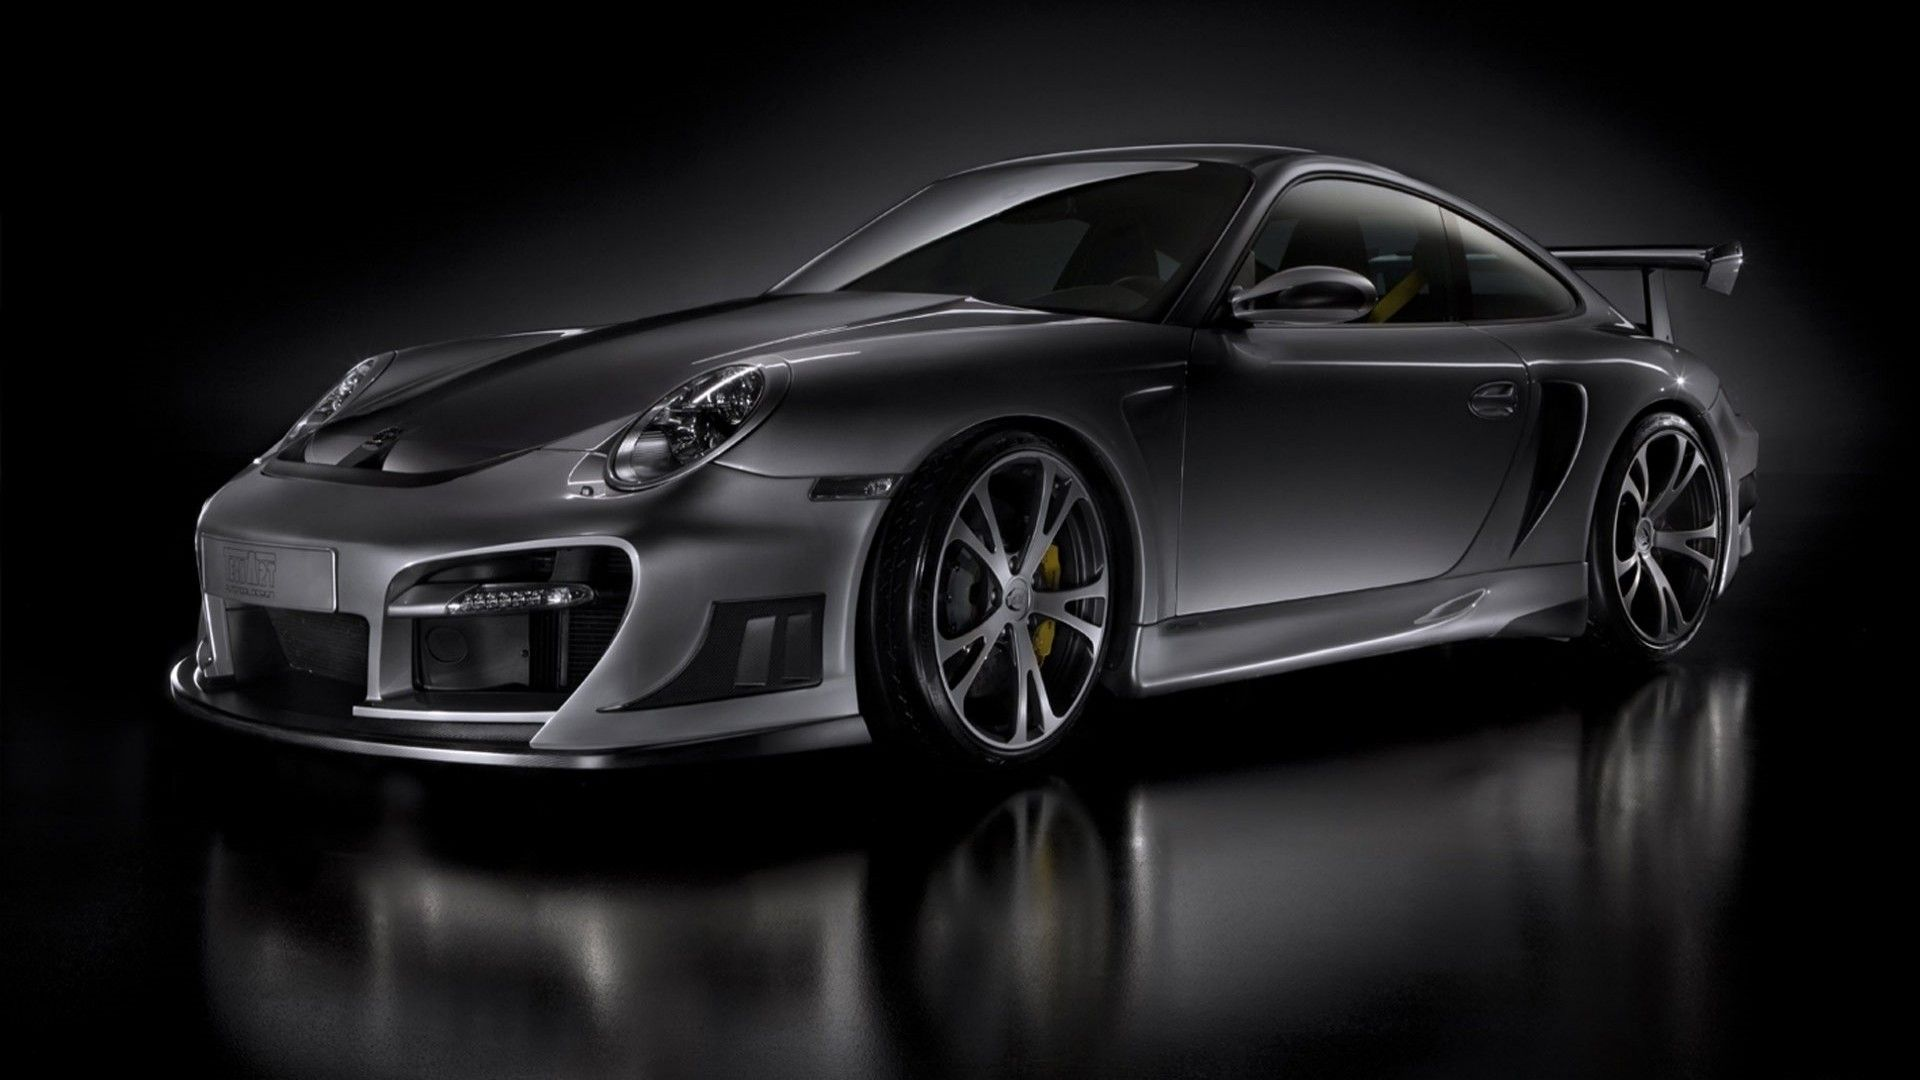 34850e9117ec3930882330afe0d9ac0f Outstanding Porsche 911 Gt2 Rs Price In India Cars Trend